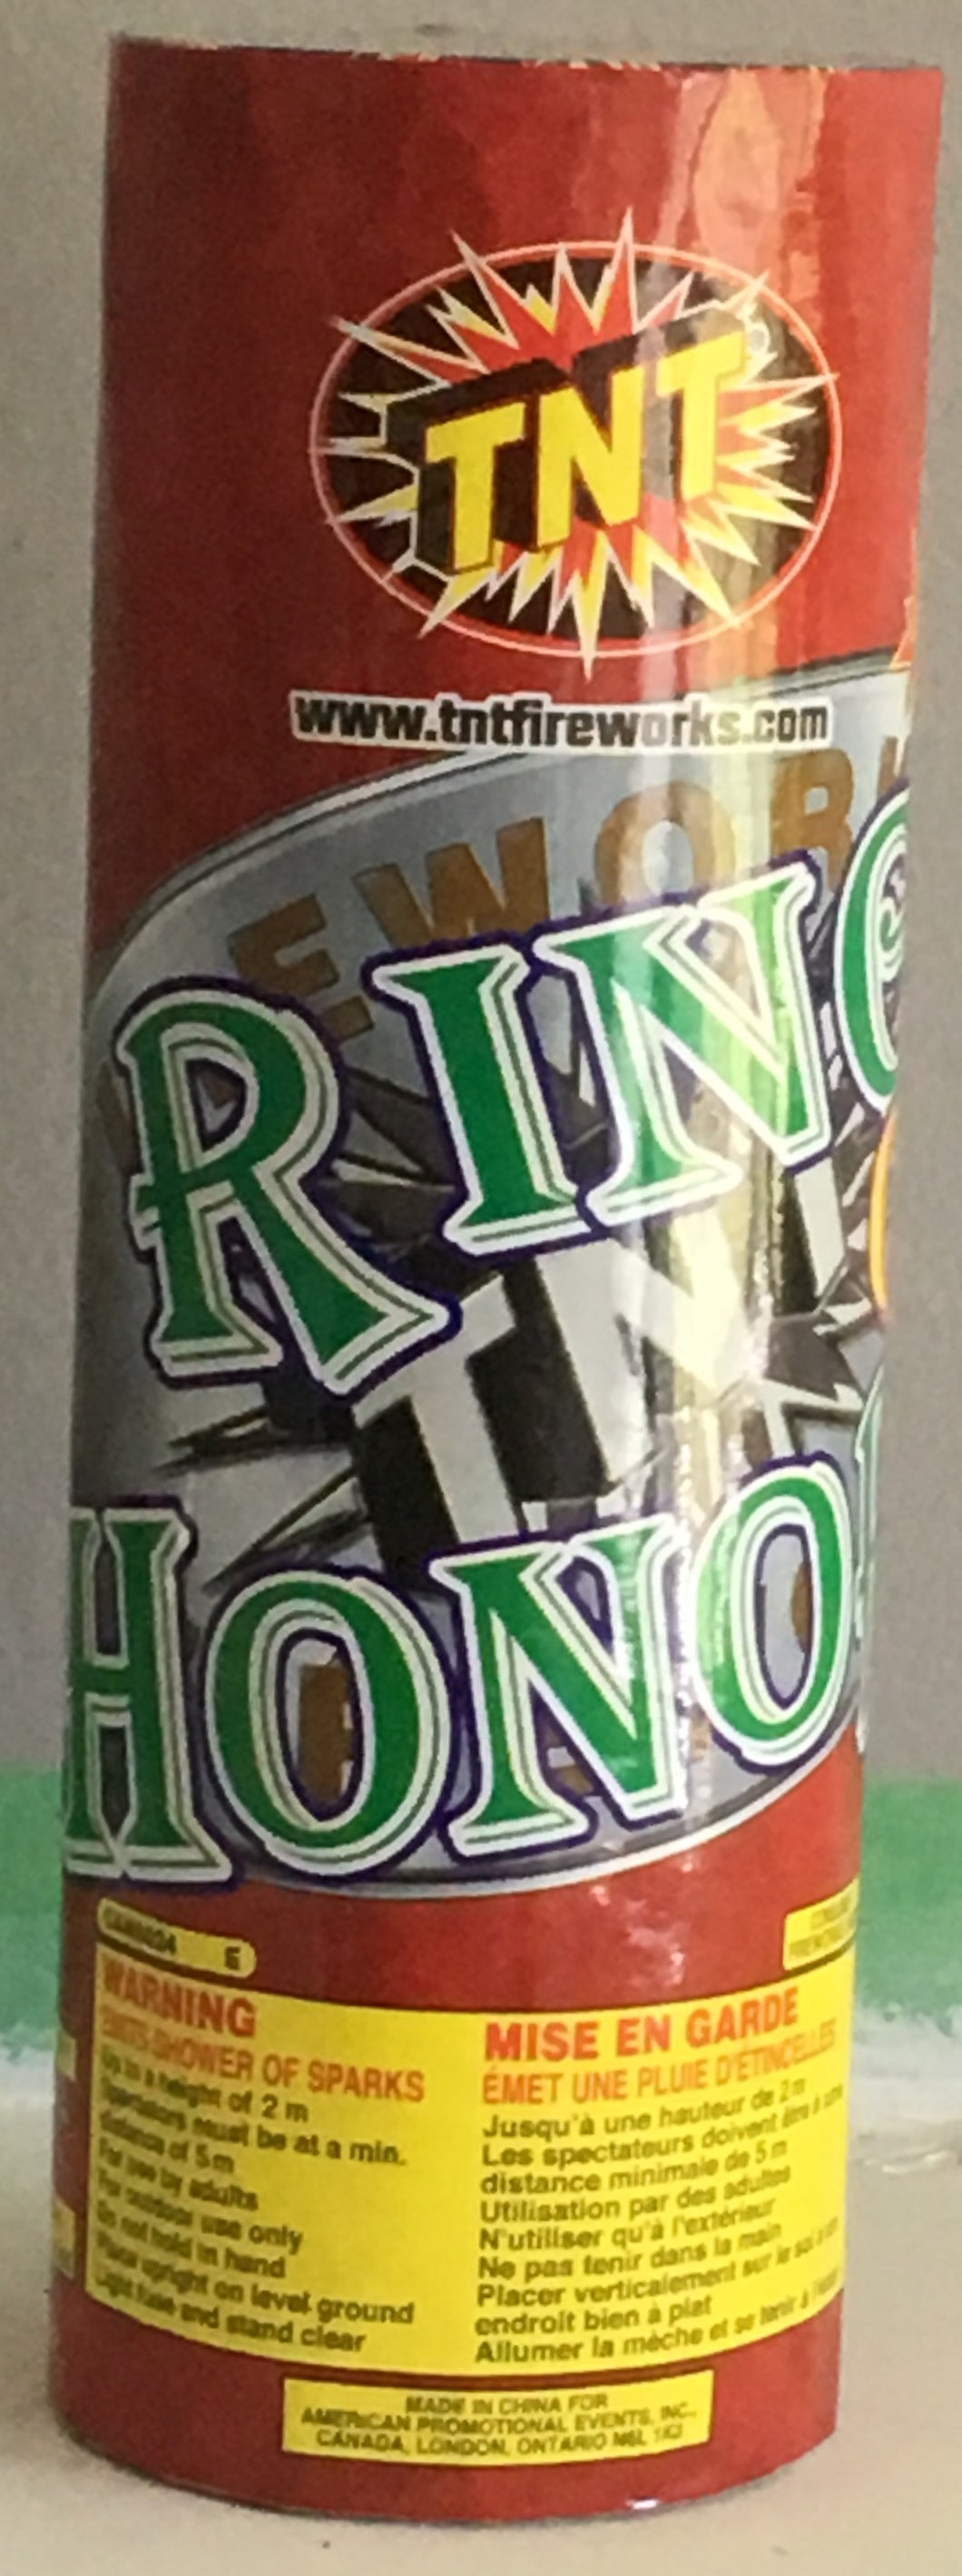 ring of honor buy 1 get 1 free